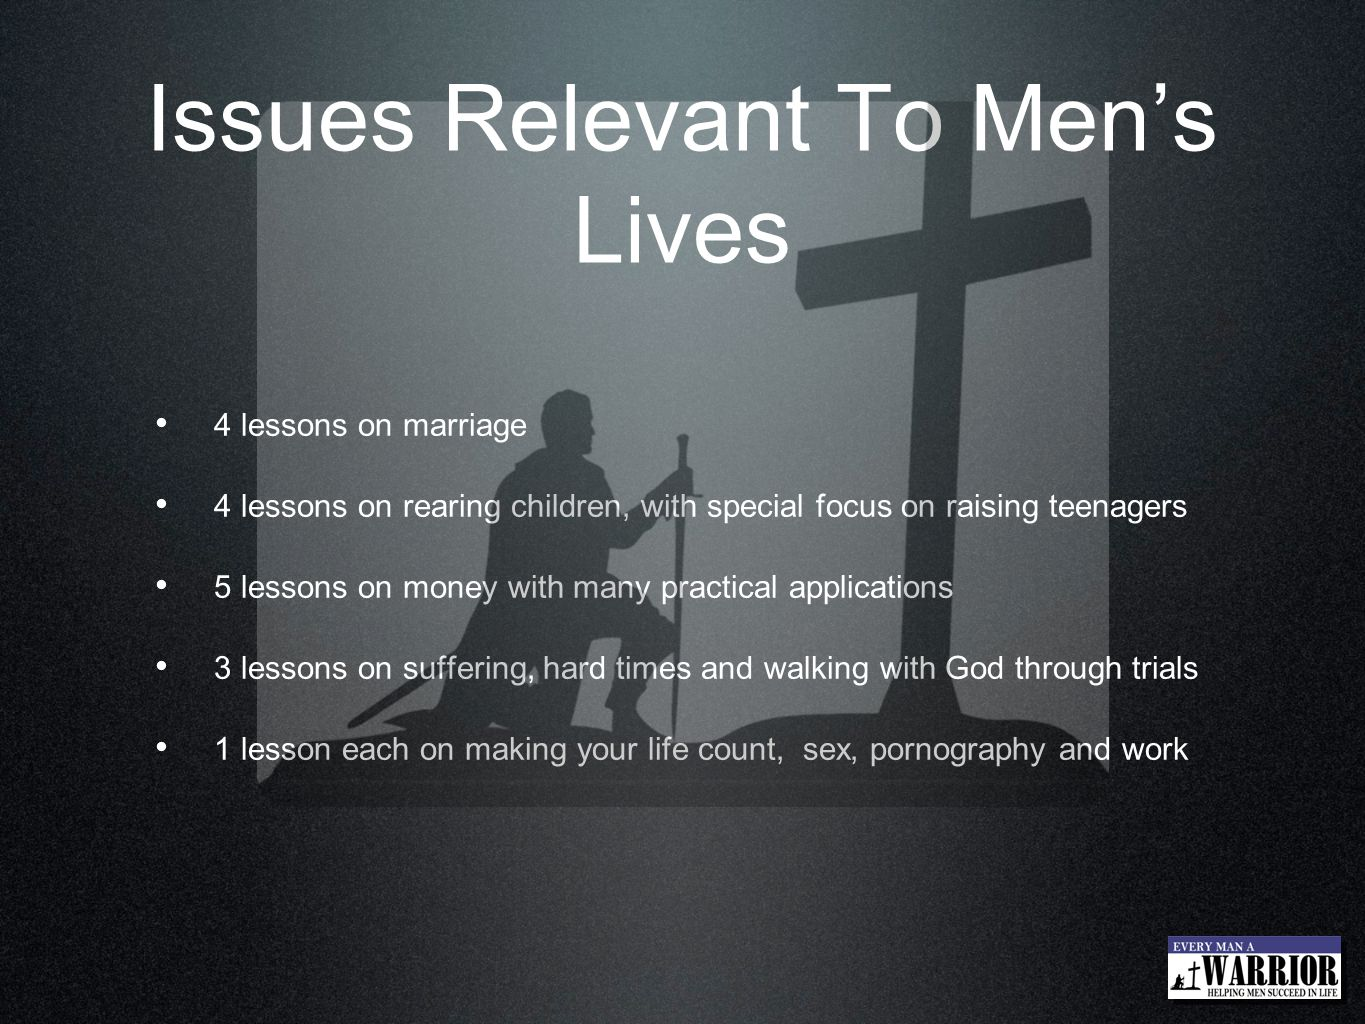 Issues Relevant To Men's Lives